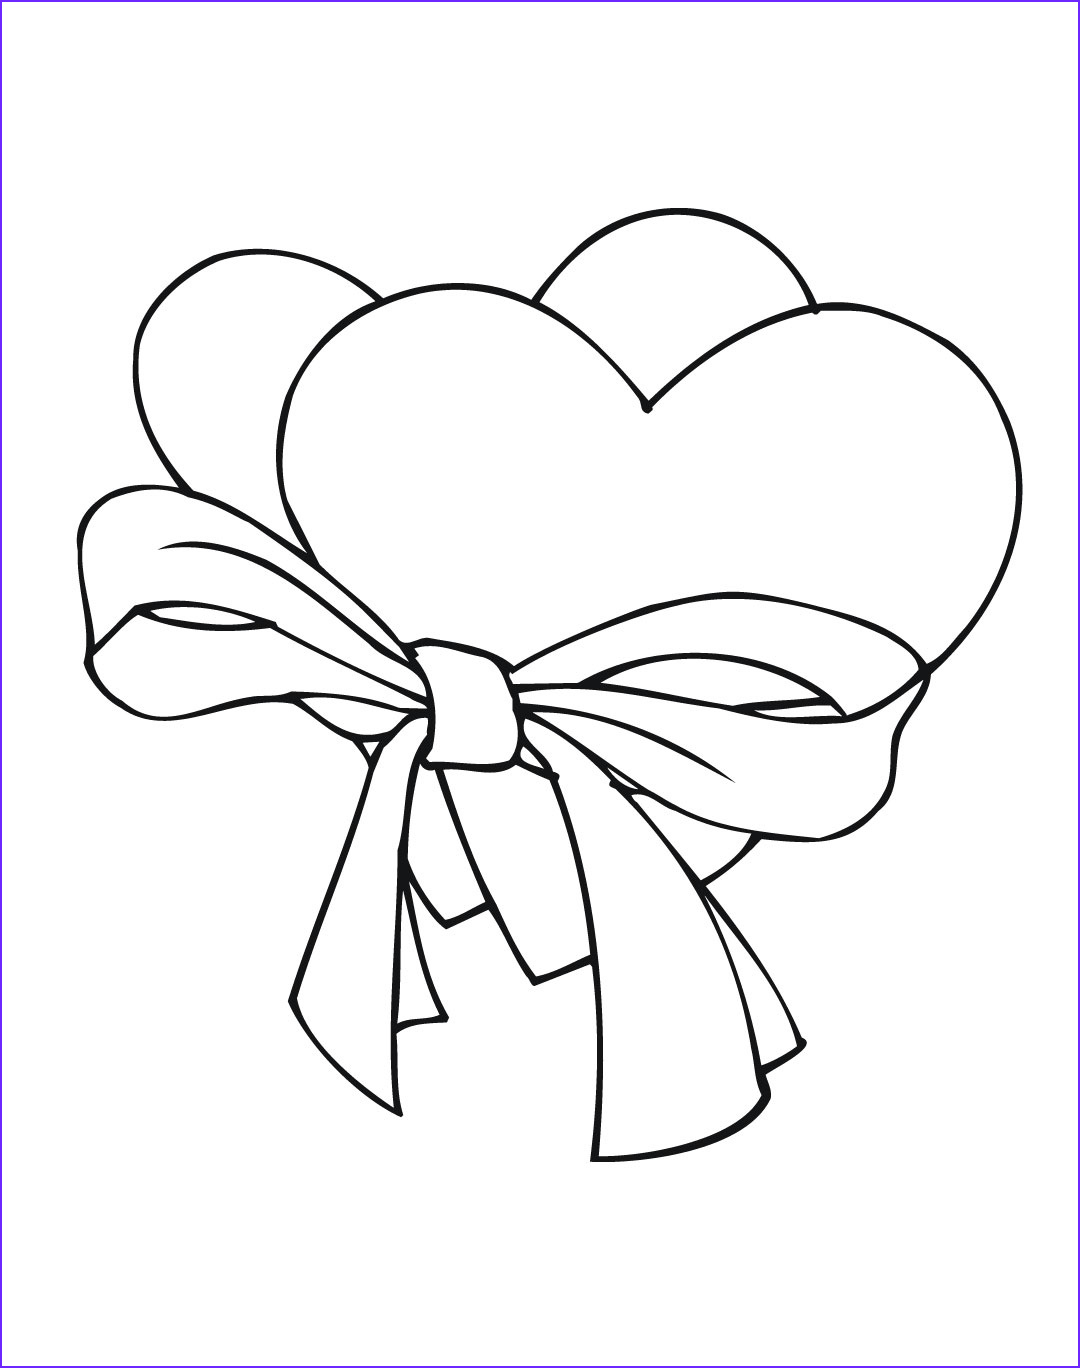 Printable Coloring Book Pages Beautiful Gallery Free Printable Heart Coloring Pages for Kids